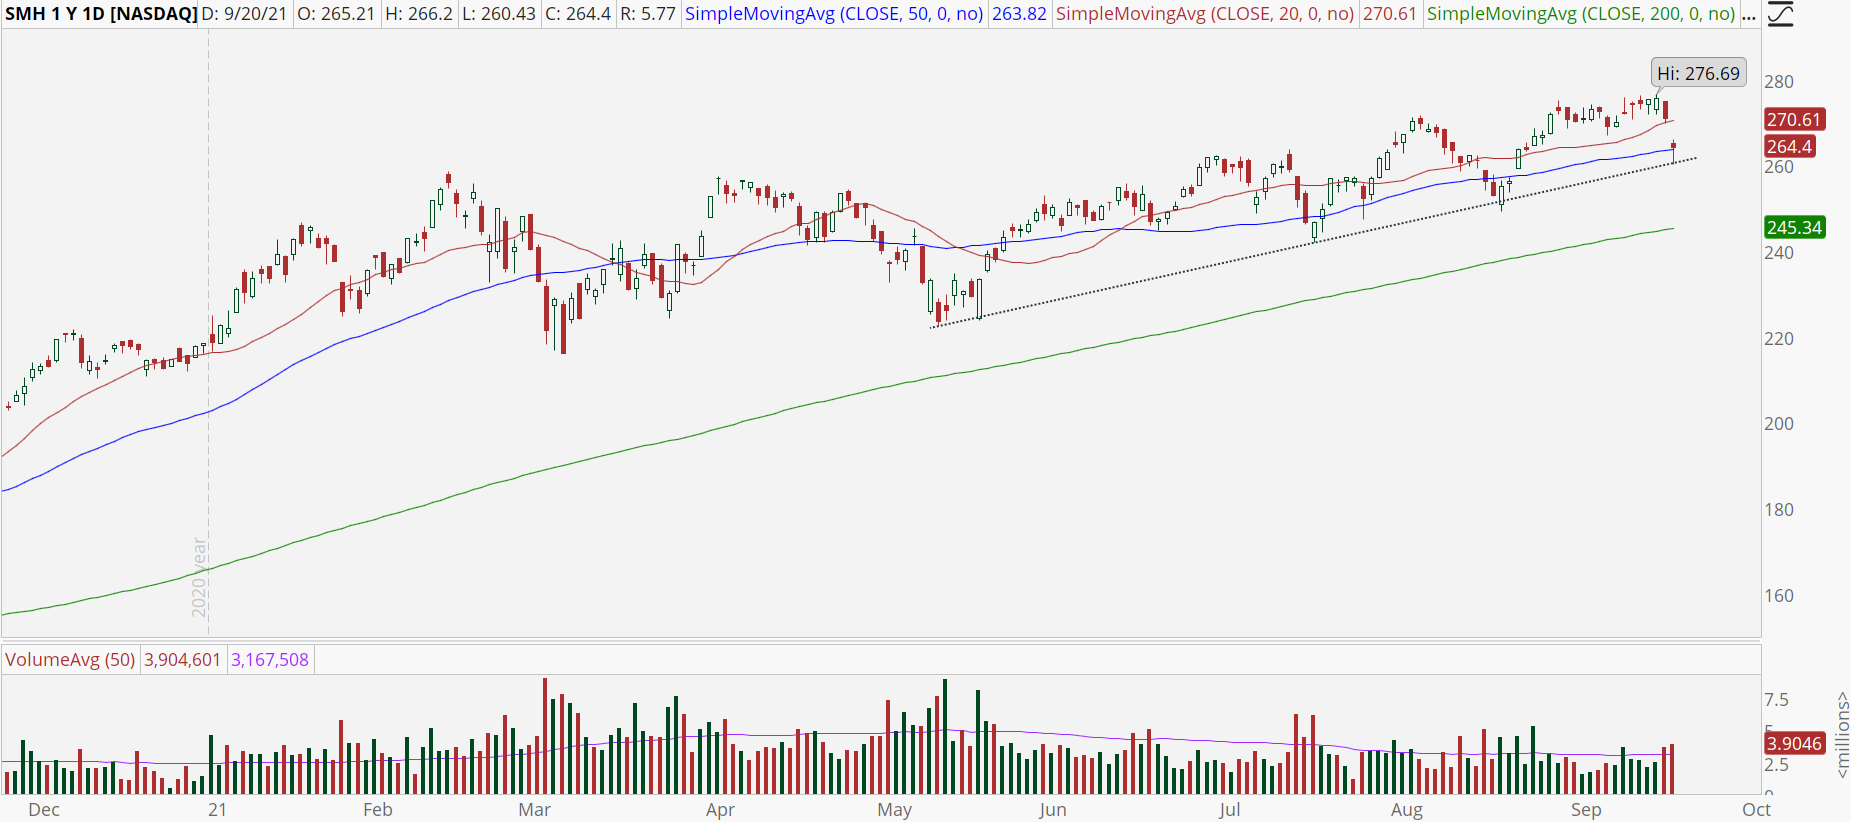 Semiconductor ETF (SMH) with 50 MA support test